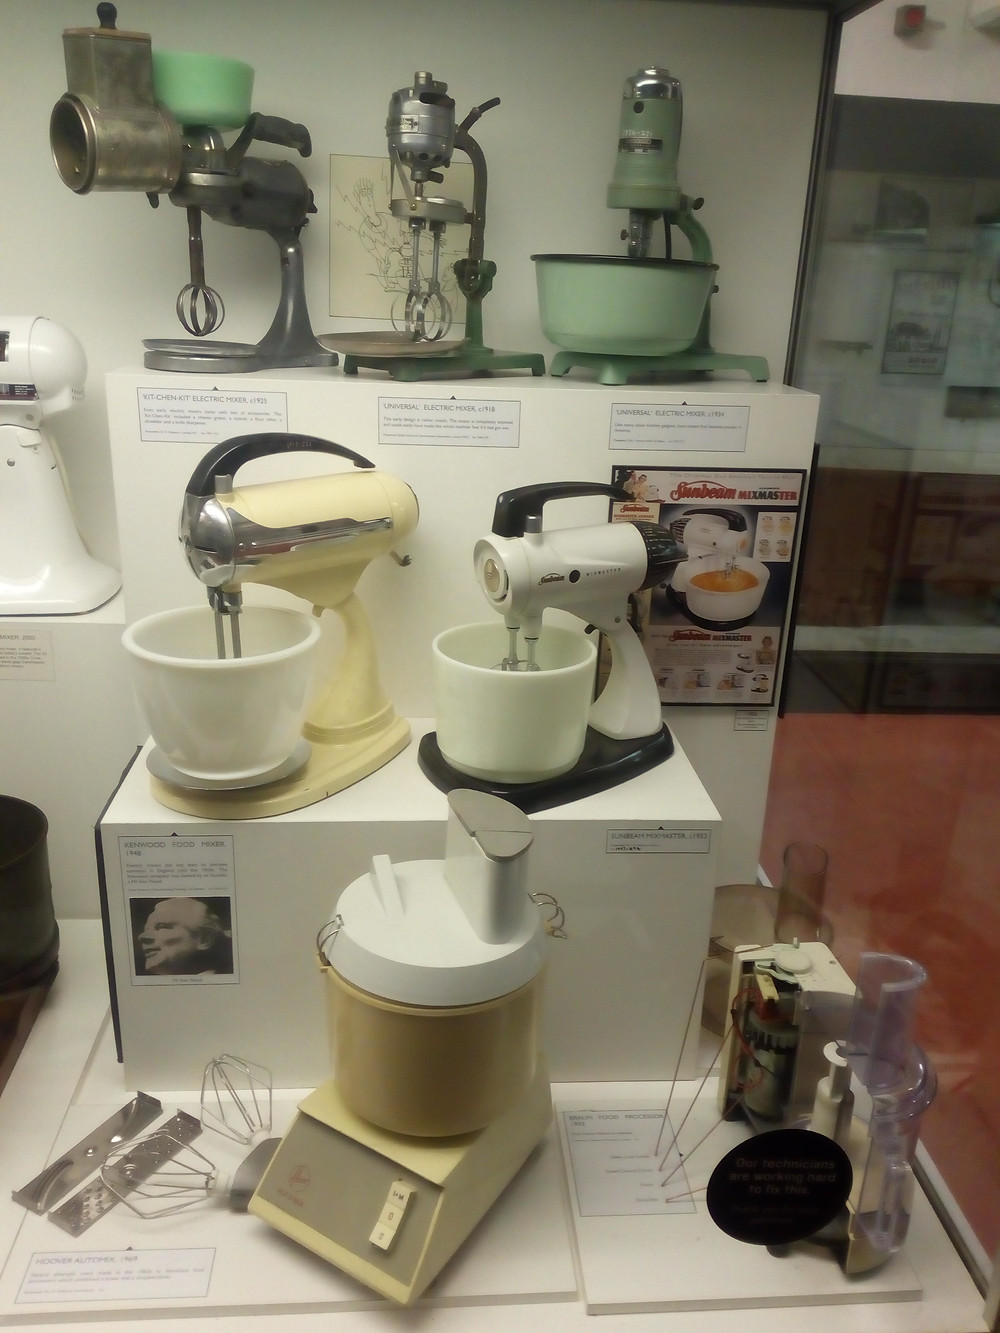 Kitchen mixers throughout the 20th century